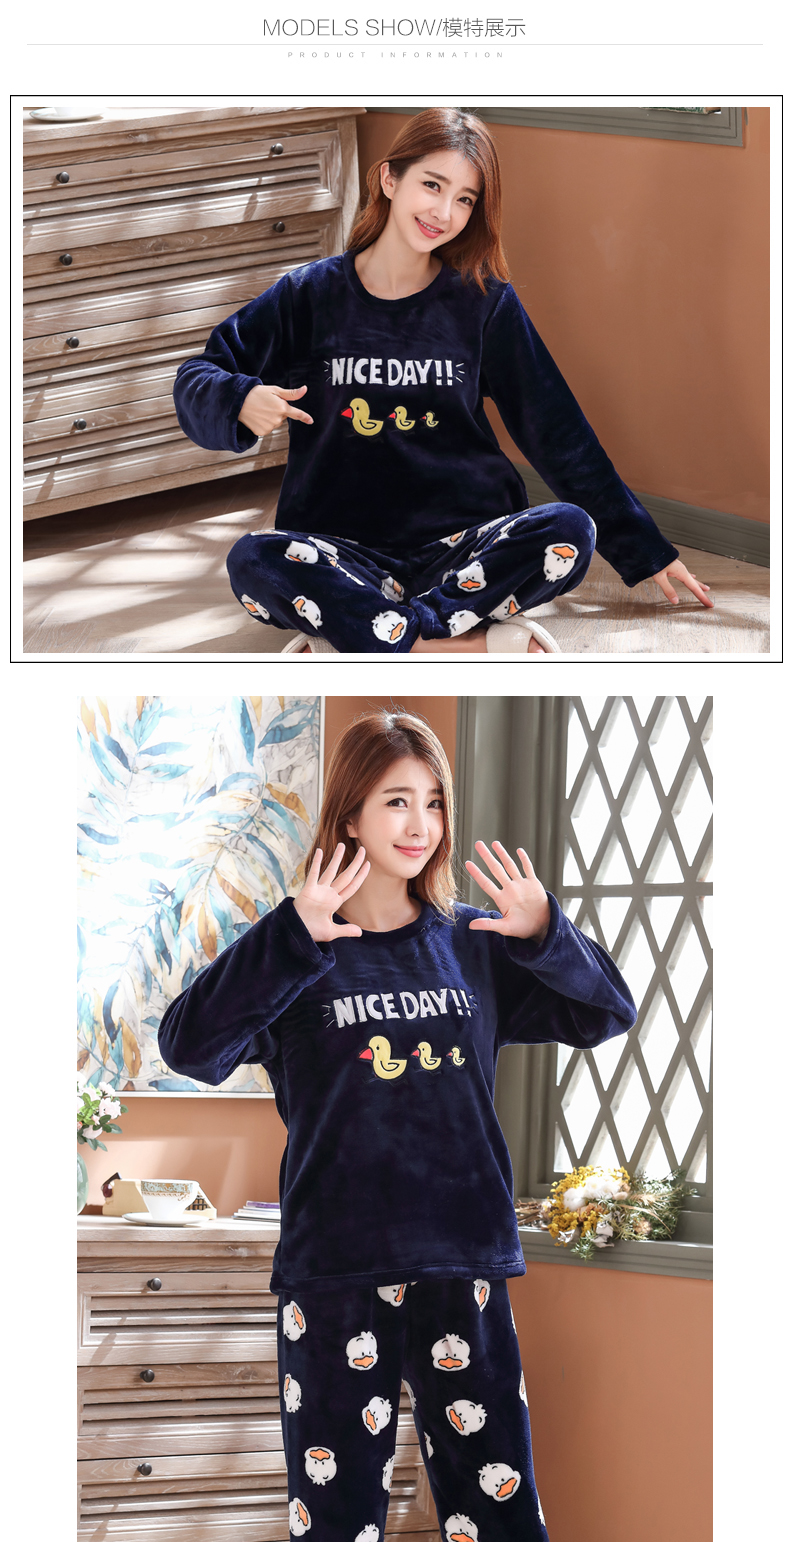 Long Sleeve Warm Flannel Pajamas Winter Women Pajama Sets Print Thicken Sleepwear Pyjamas Plus Size 3XL 4XL 5XL 85kg Nightwear 365